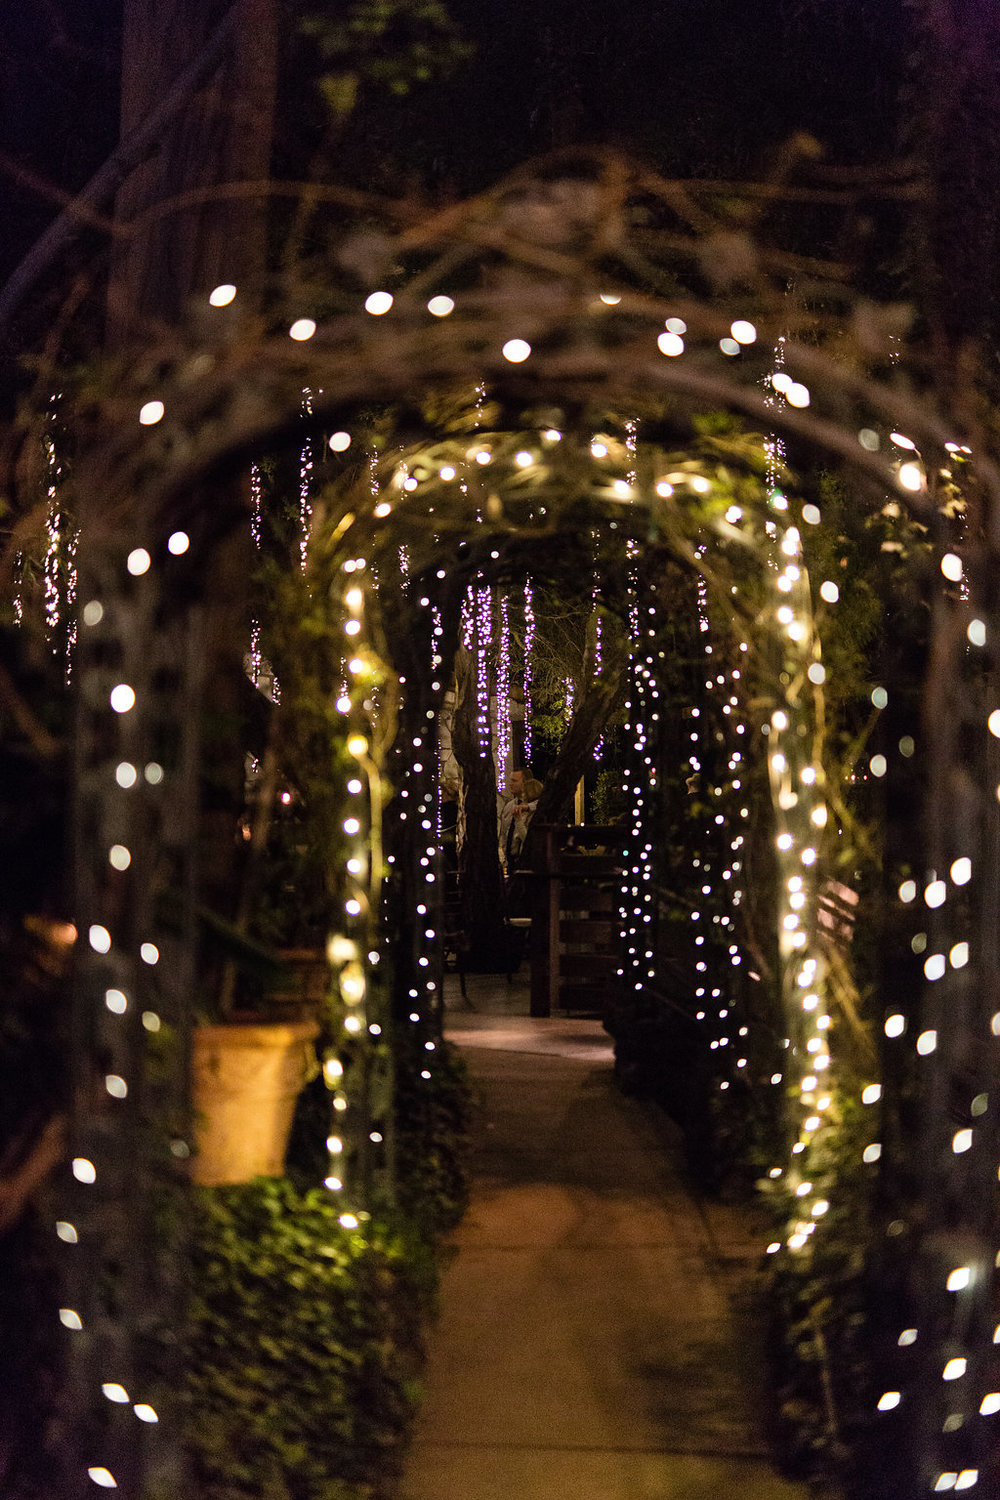 calamigos-ranch-malibu-wedding-reception-lights.jpeg